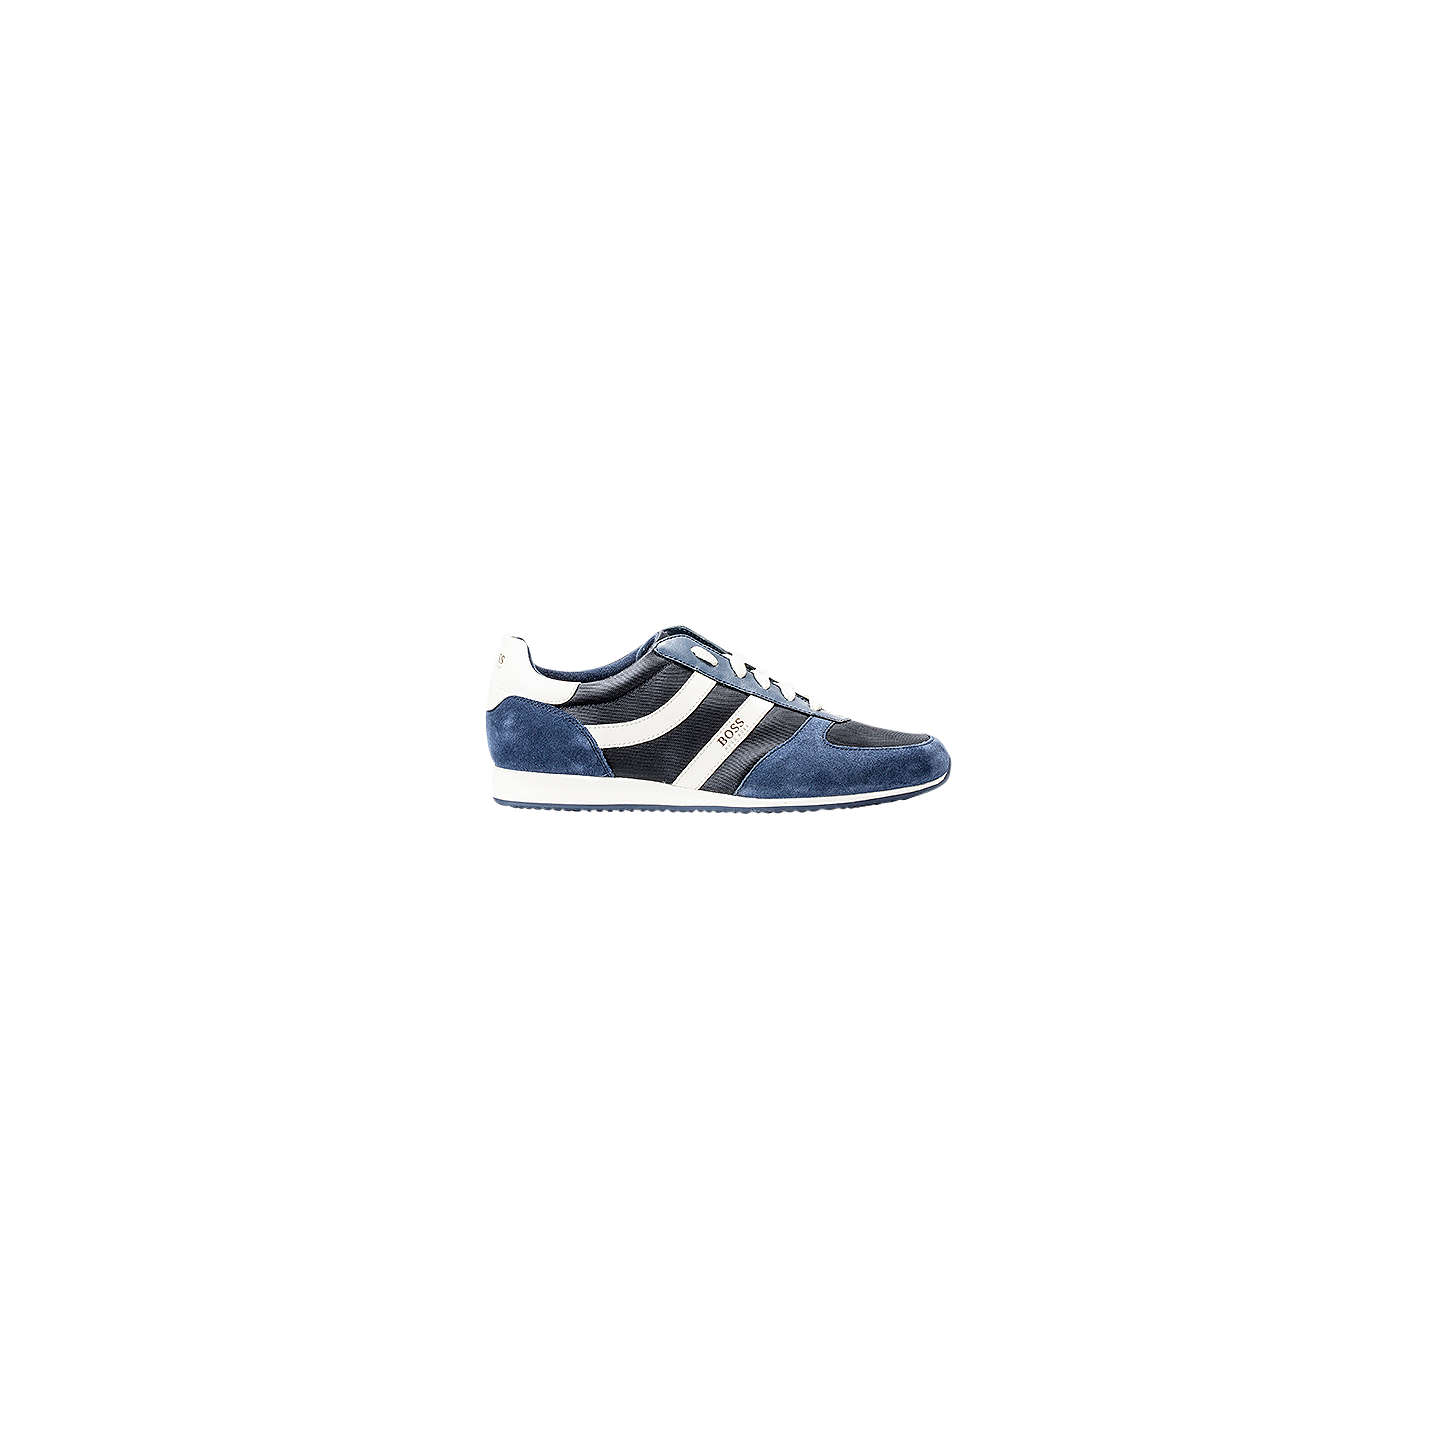 BuyHUGO BOSS Orlando Trainers, Navy, 7 Online at johnlewis.com